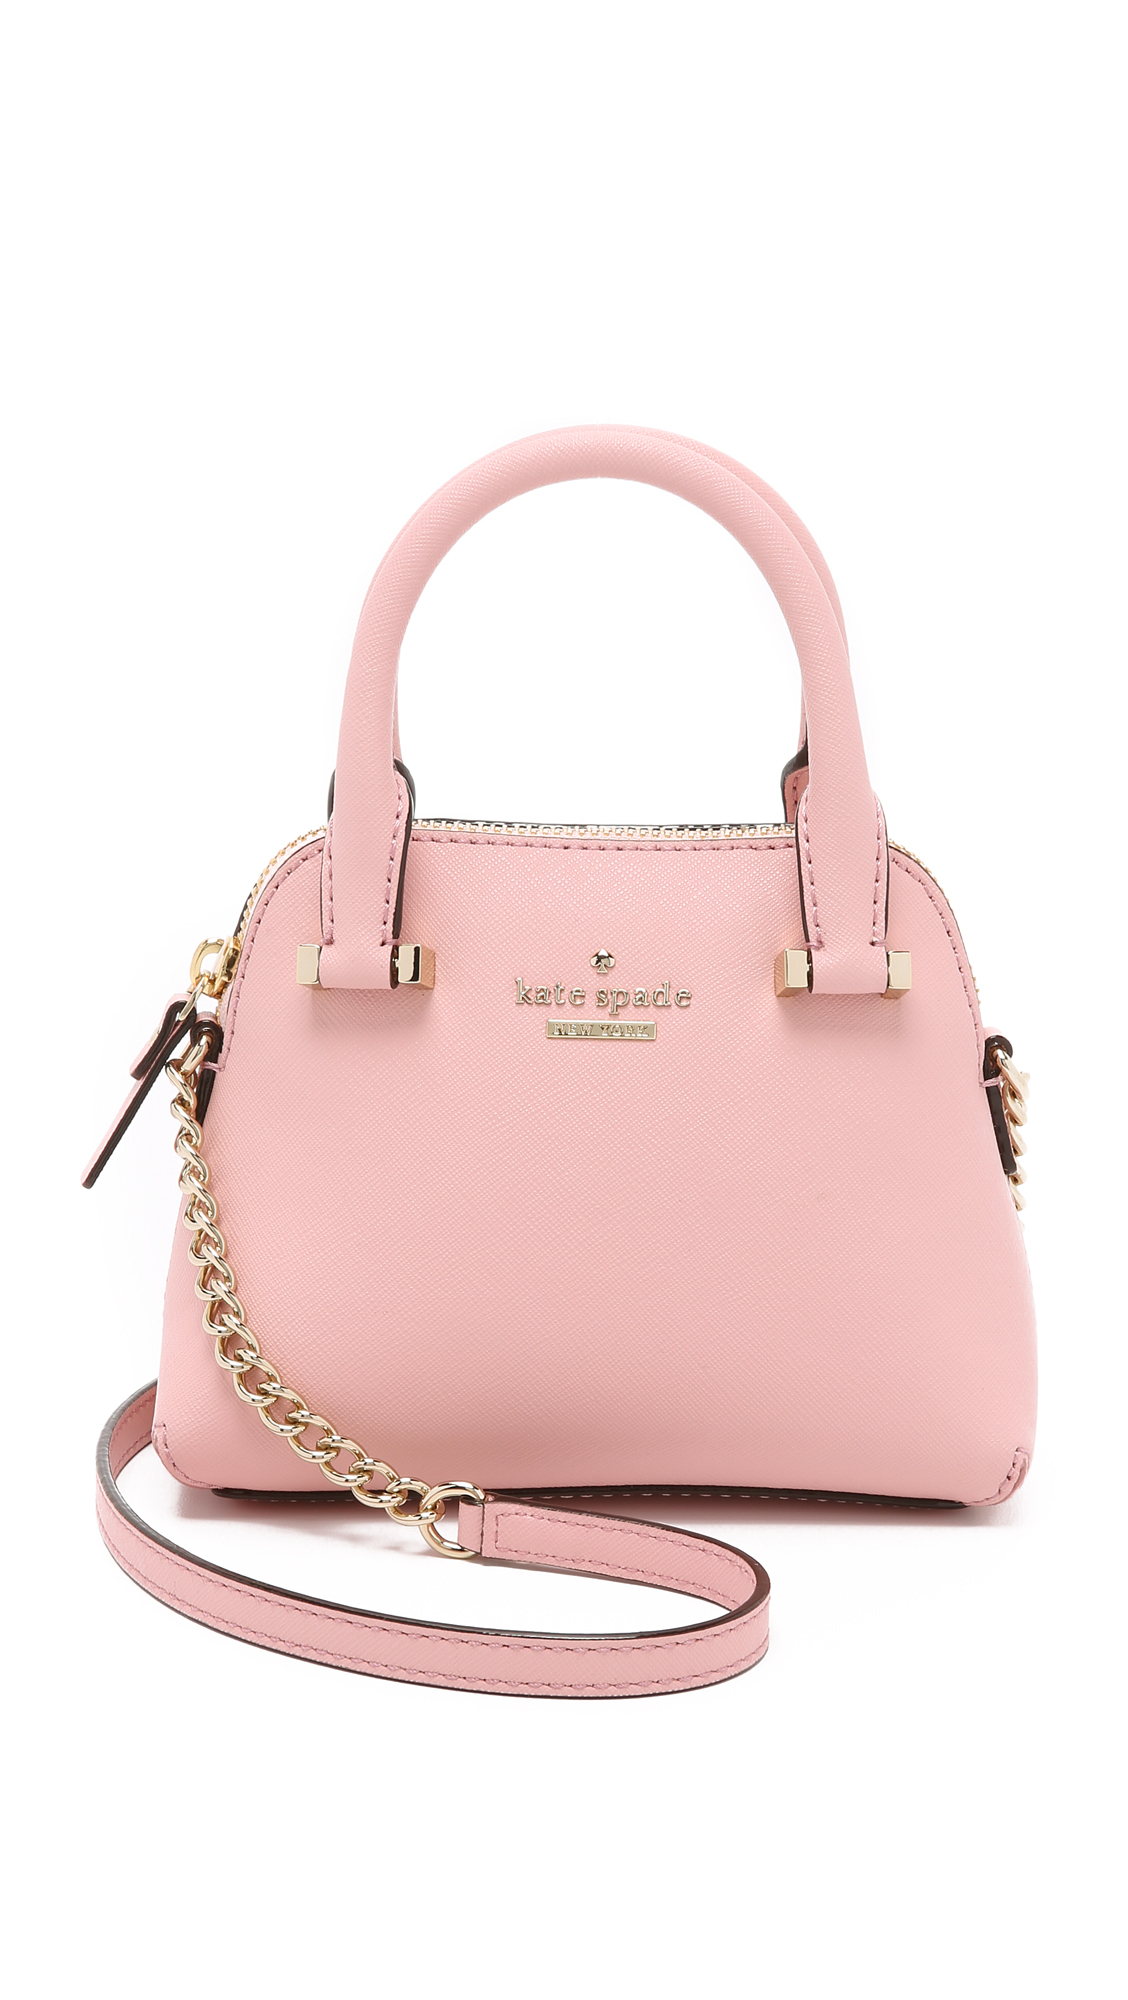 38d7aab6b Pink Bag Kate Spade | Stanford Center for Opportunity Policy in ...